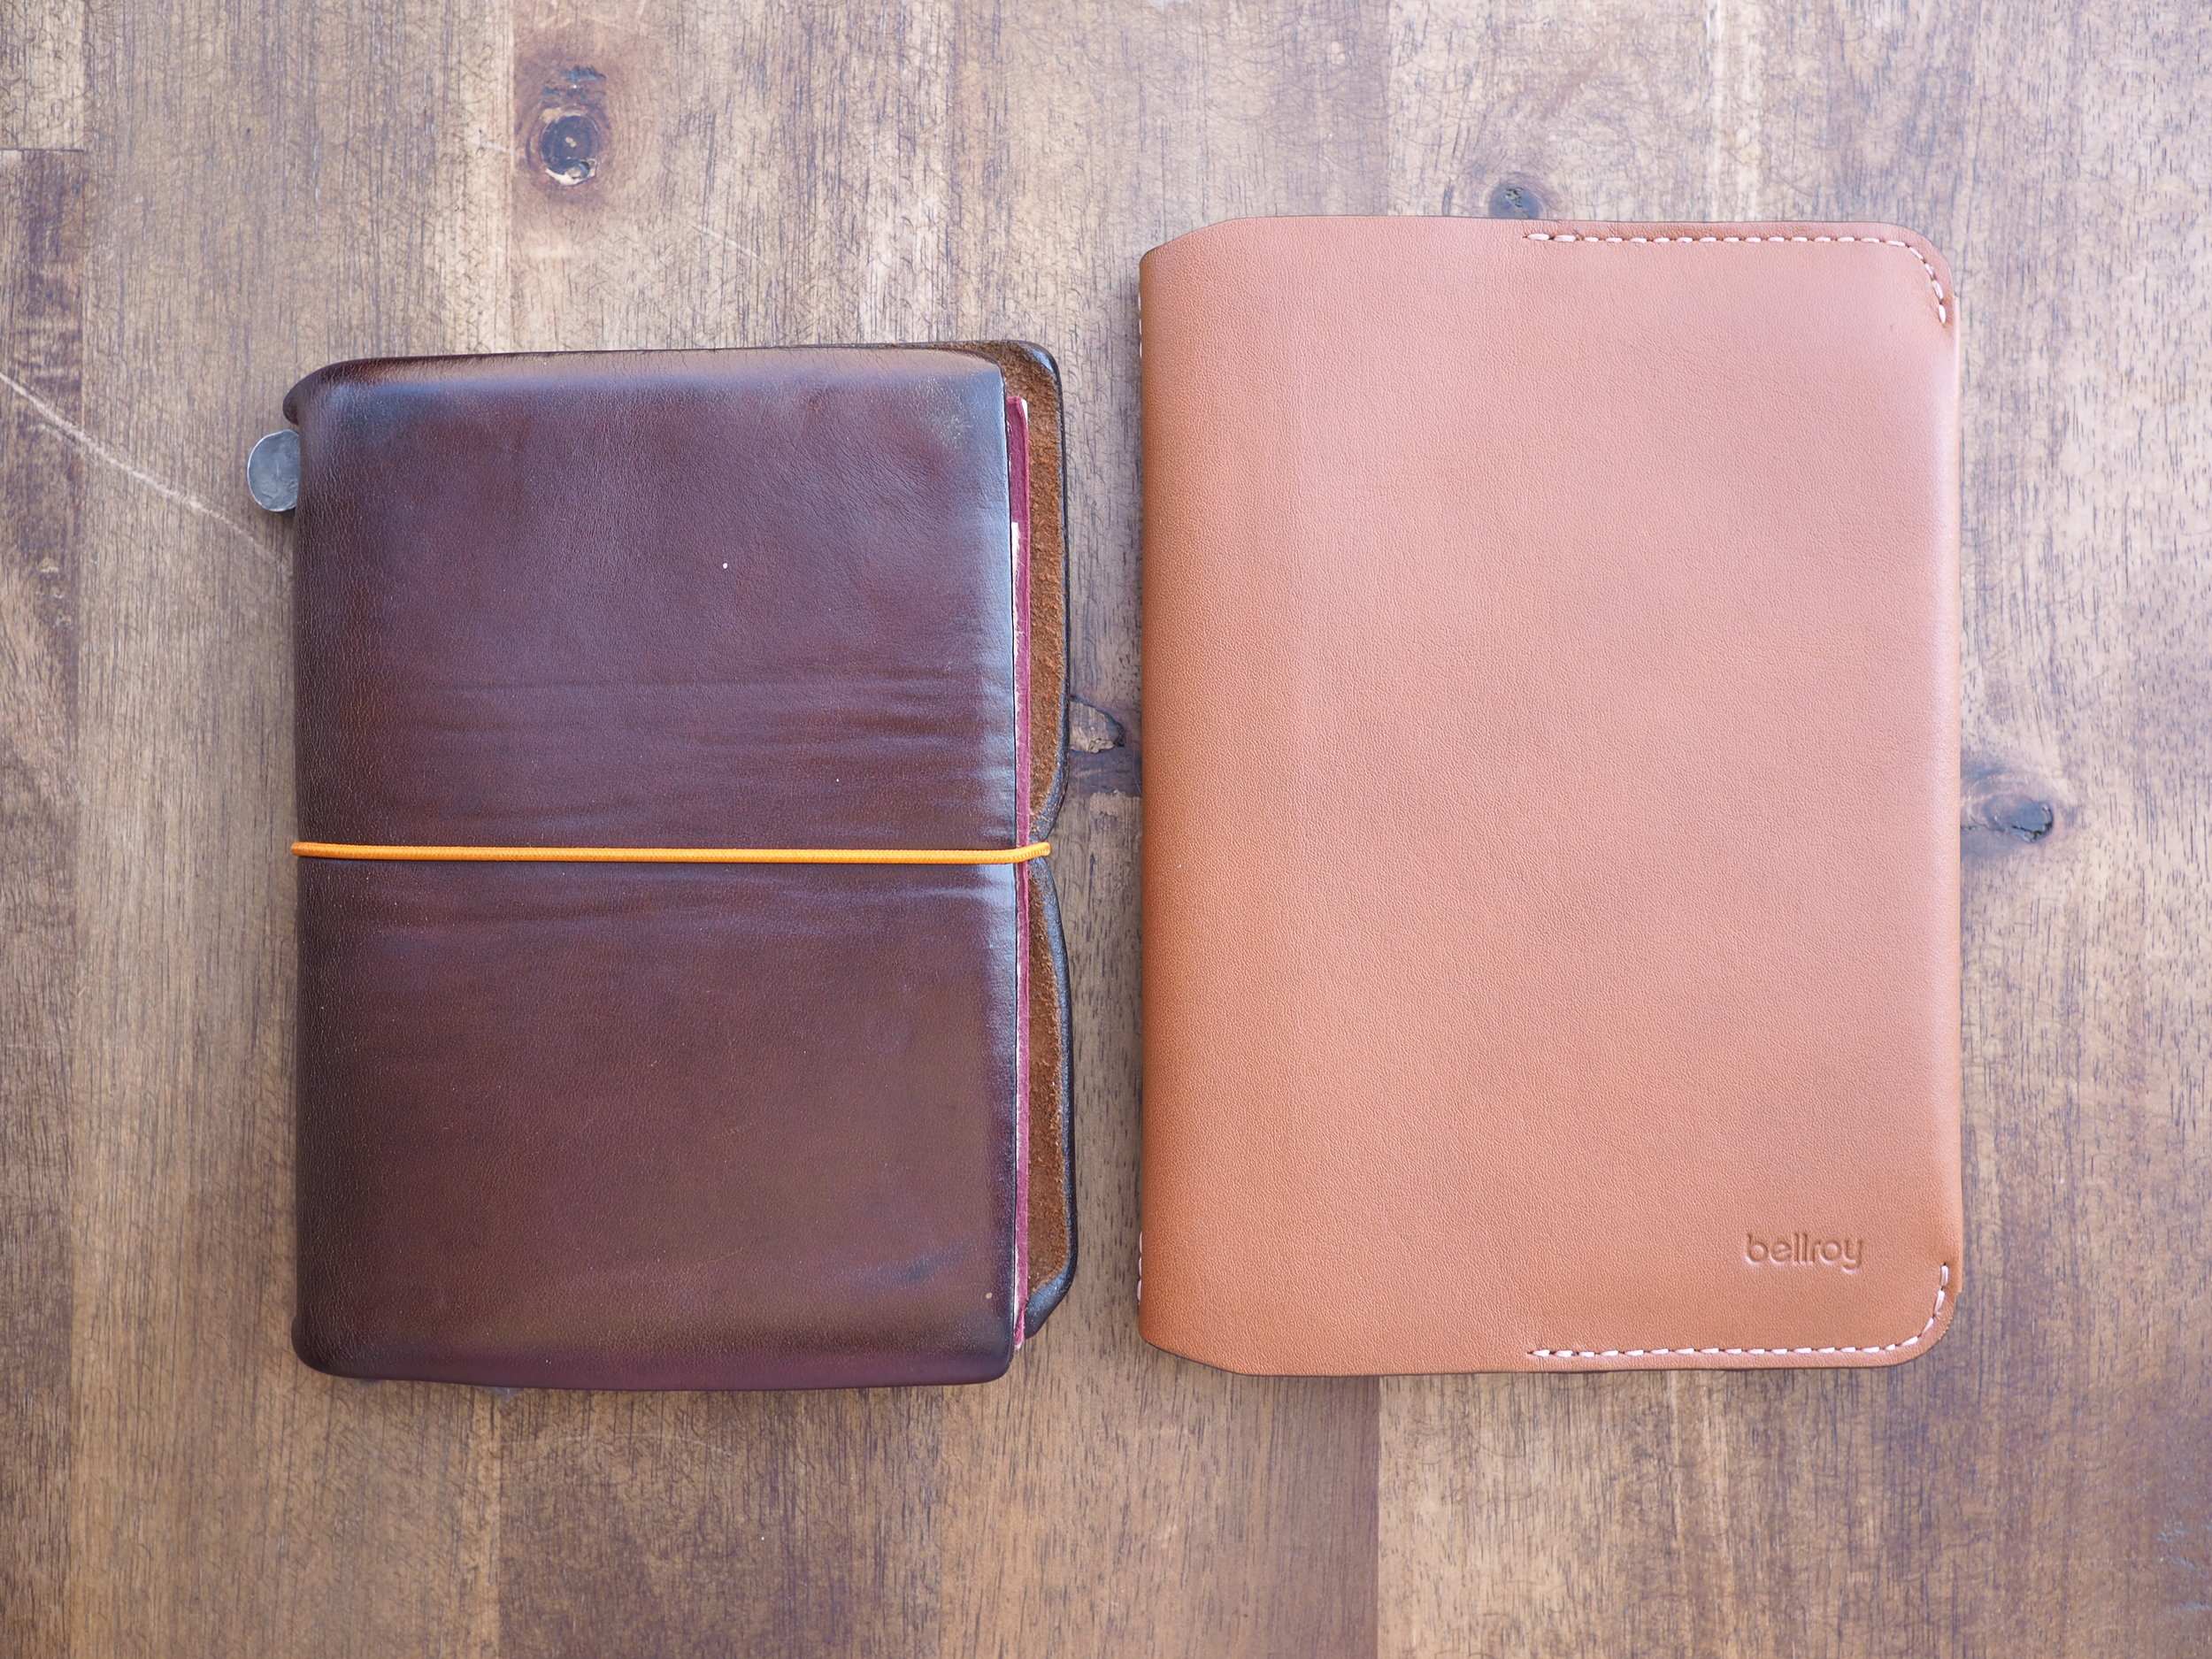 Compared to Traveler's Notebook